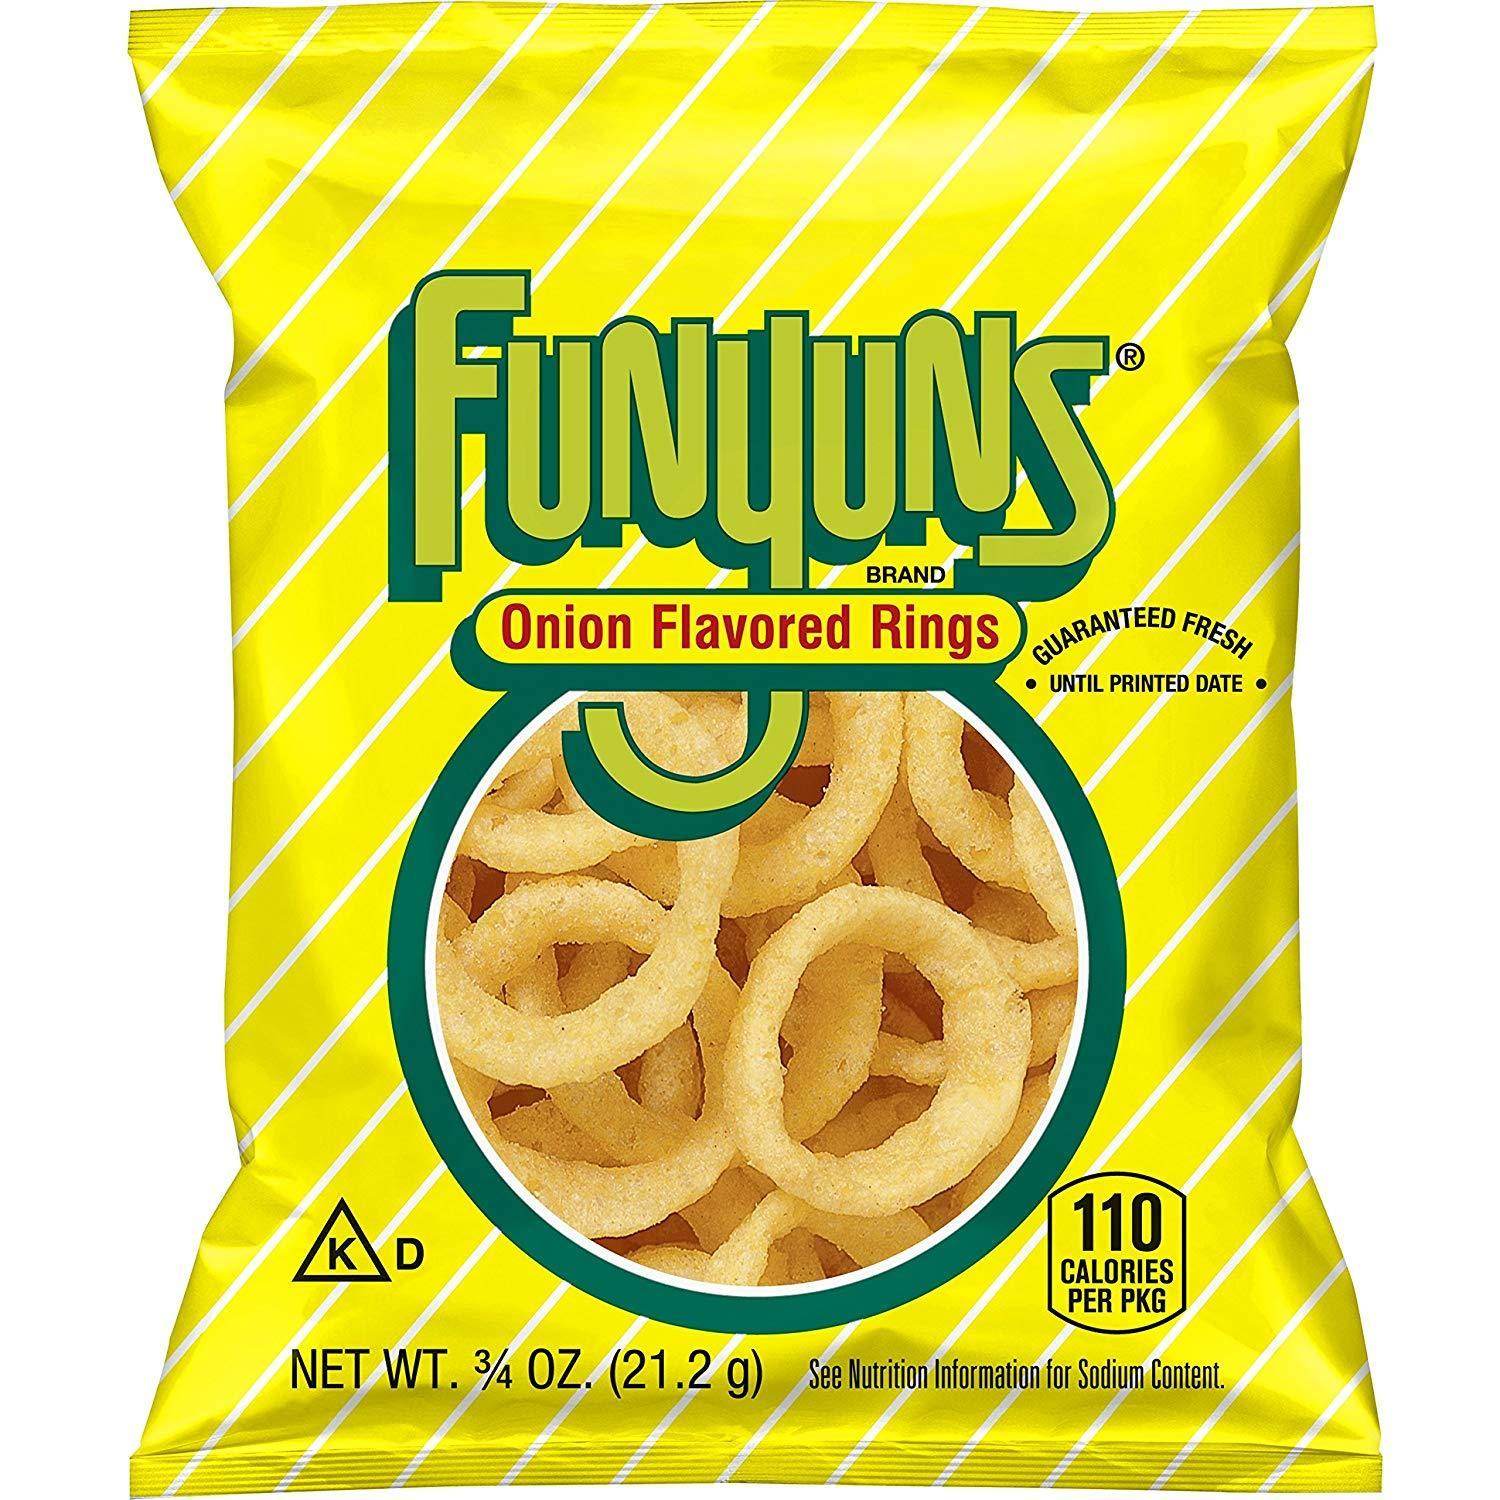 40-Pack 0.75oz Funyuns Onion Flavored Rings